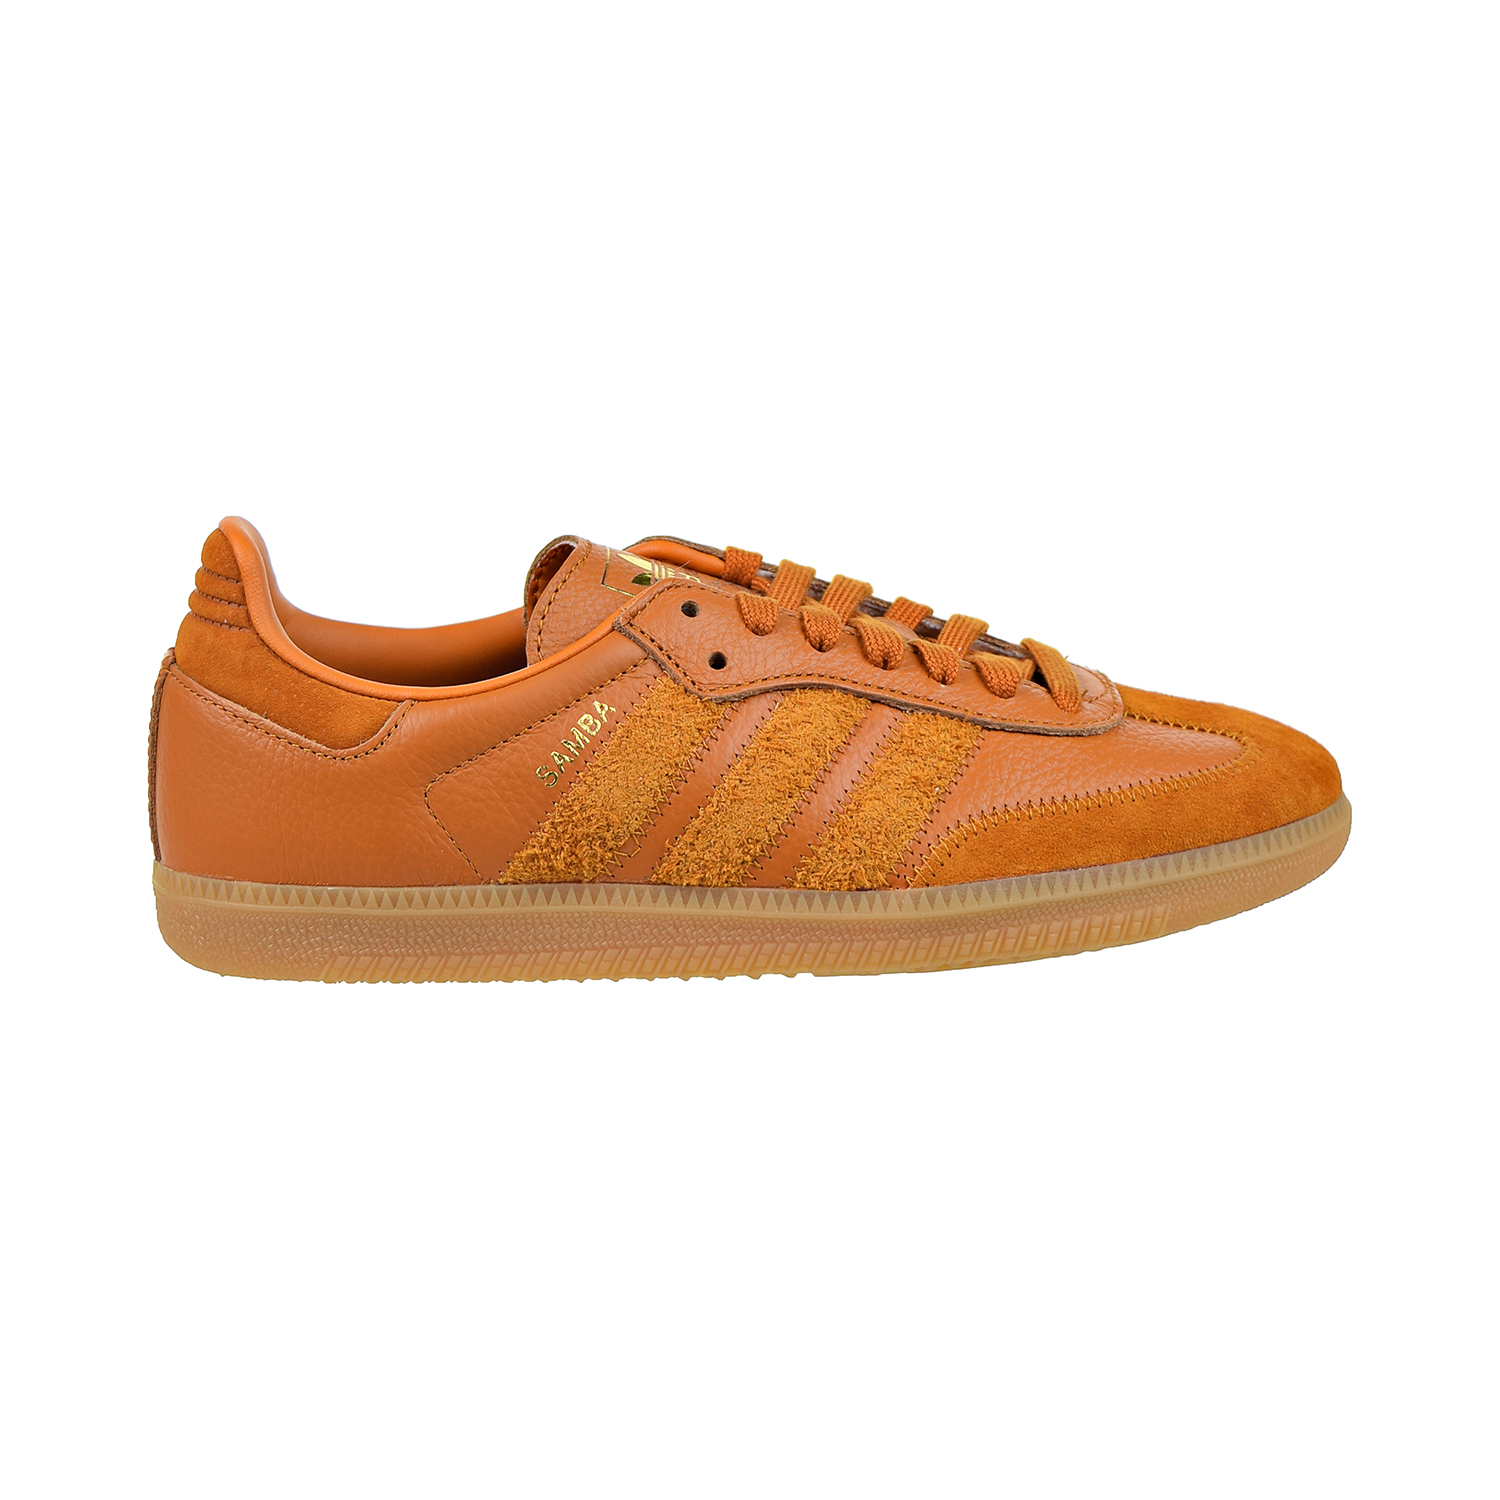 Adidas Soccer Shoes Mens Outlet Online Adidas Samba